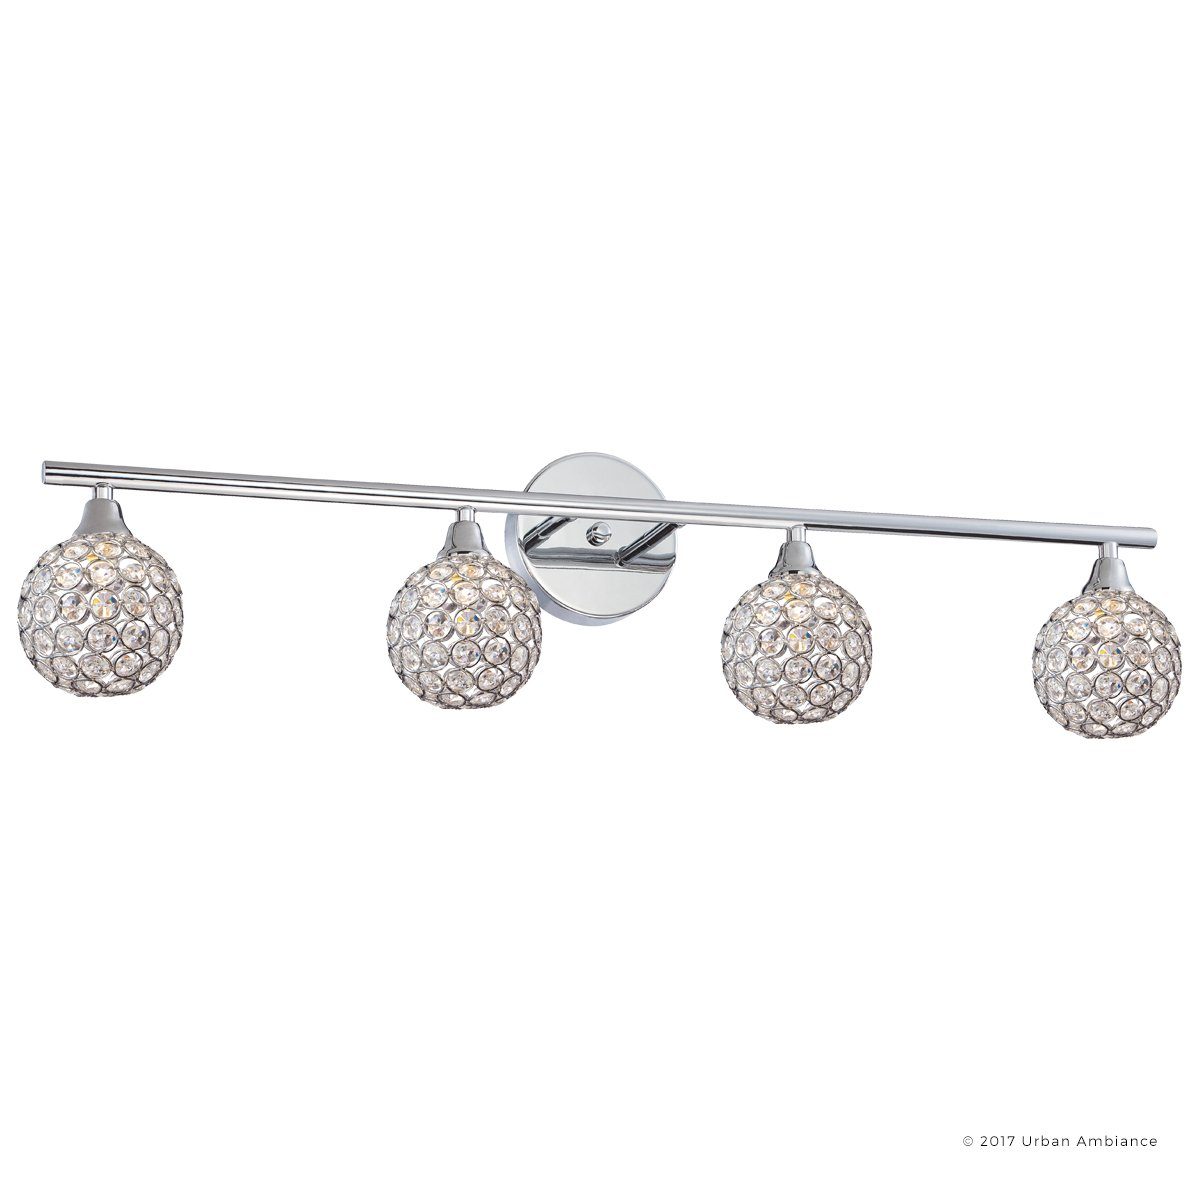 Luxury Crystal Globe LED Bathroom Vanity Light, Large Size: 8''H x 32.5''W, with Modern Style Elements, Polished Chrome Finish and Crystal Studded Shades, G9 LED Technology, UQL2632 by Urban Ambiance by Urban Ambiance